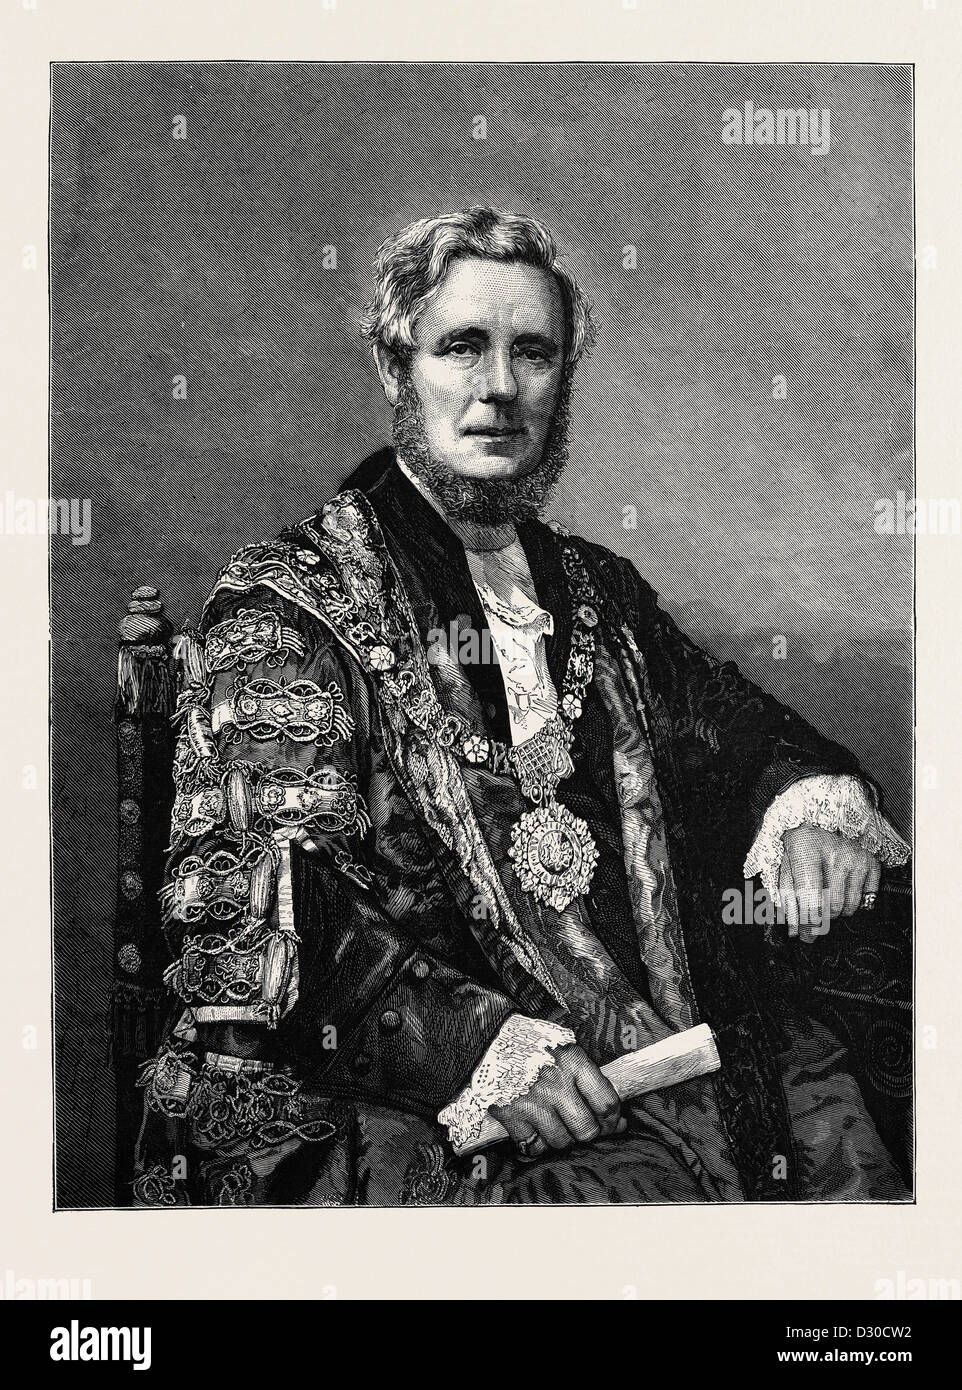 THE RIGHT HONOURABLE SIR SYDNEY HEDLEY WATERLOW, KNT., LORD MAYOR OF LONDON - Stock Image